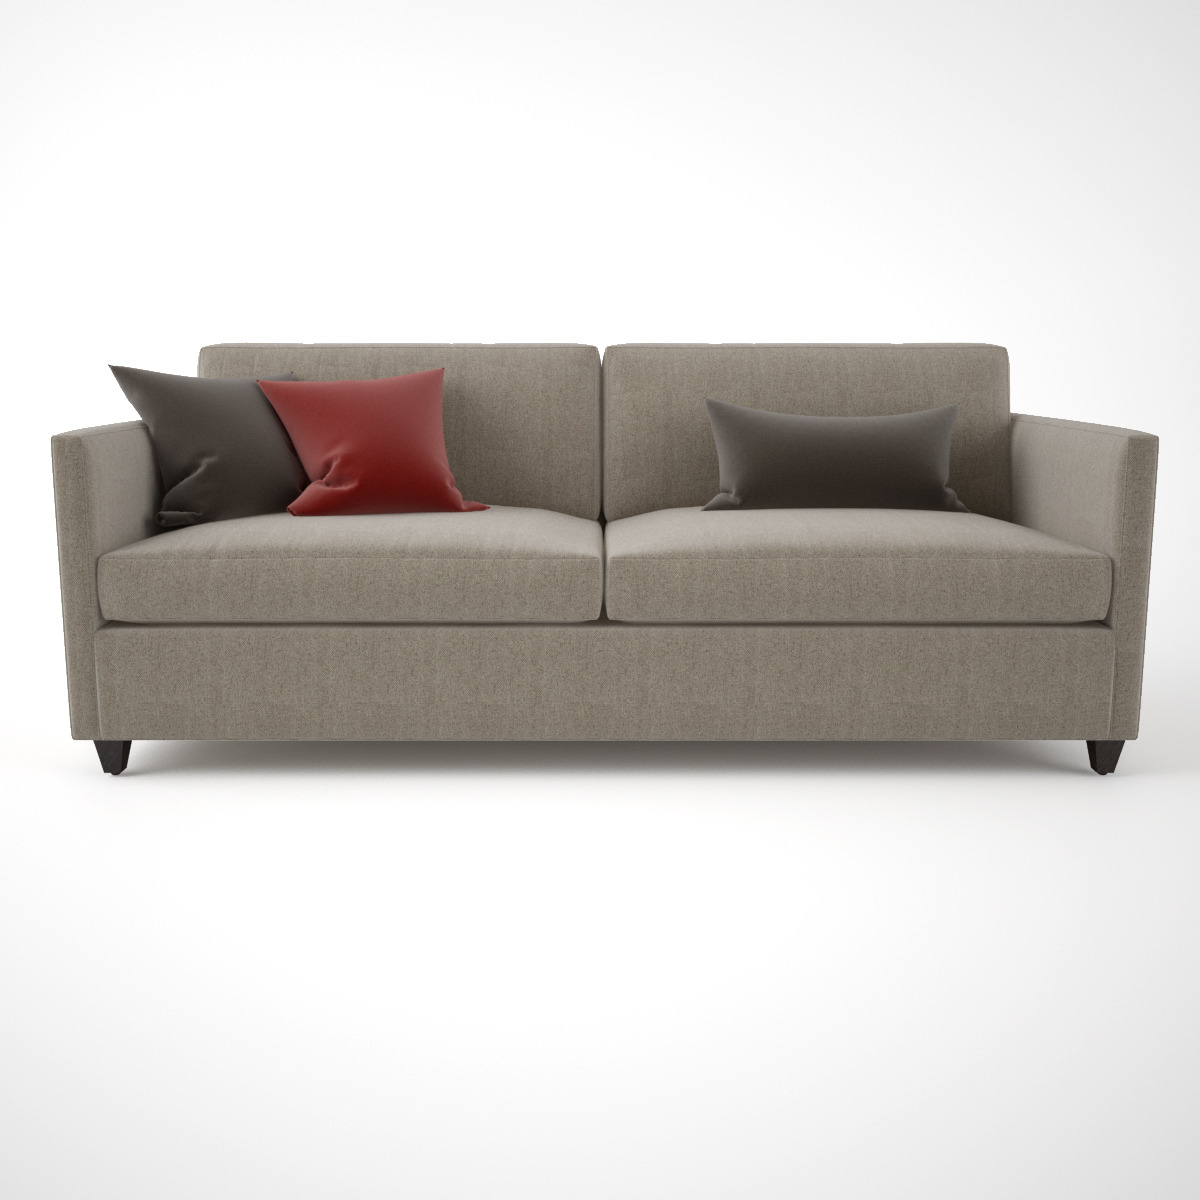 Crate and Barrel Dryden Apartment Sofa by emp_otu | 3DOcean